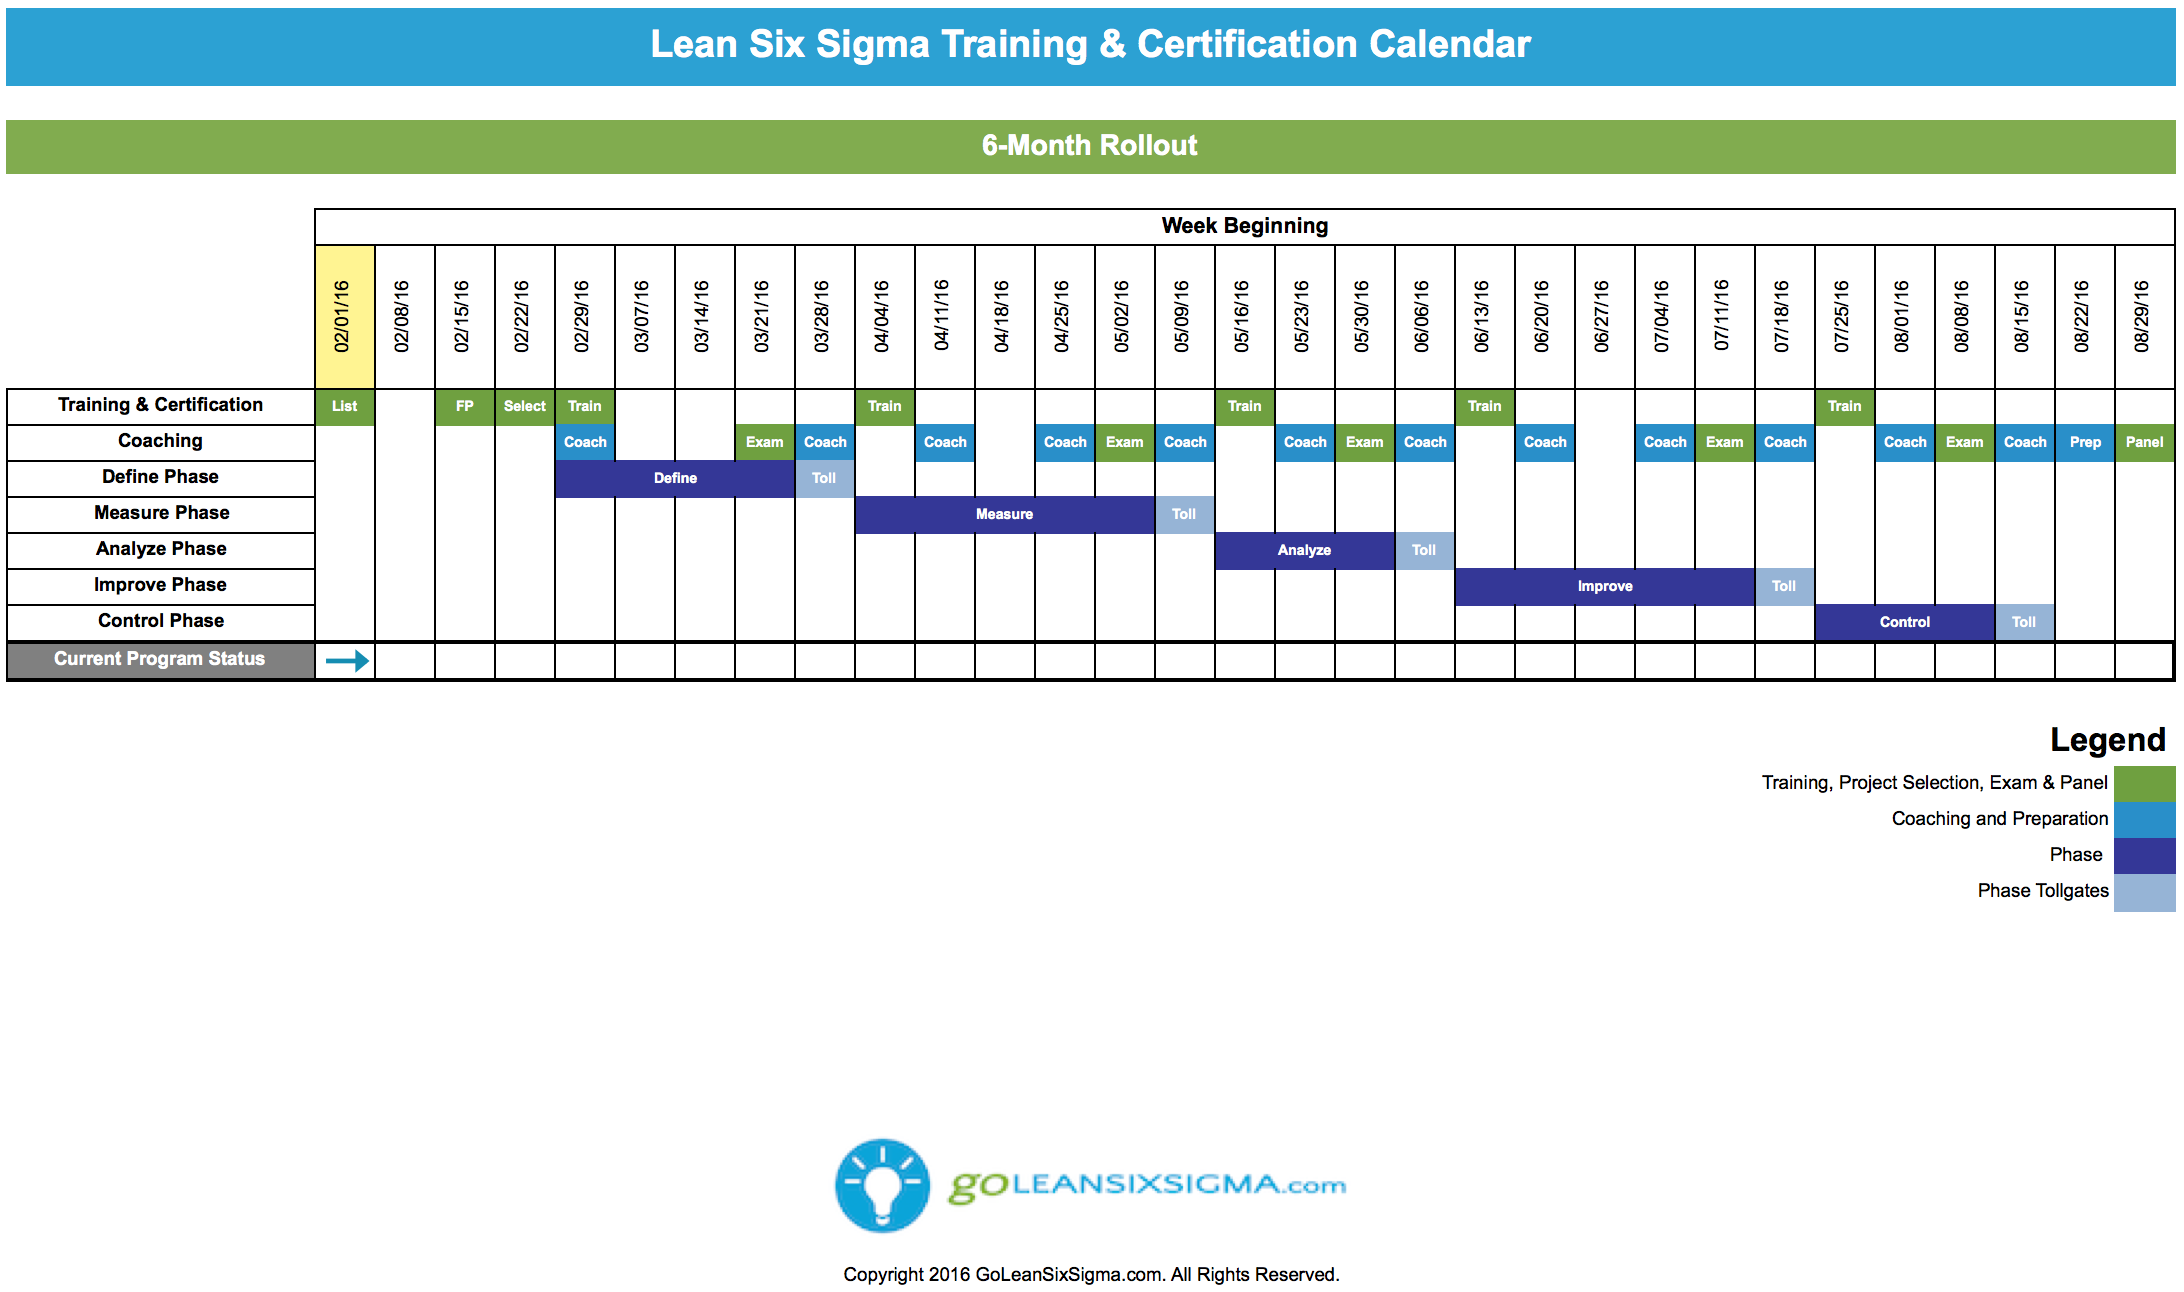 Lean six sigma training certification calendar goleansixsigma lean six sigma rollout calendar this lean six sigma training certification calendar is a customizable rollout schedule for green belts black belts or lea 1betcityfo Images